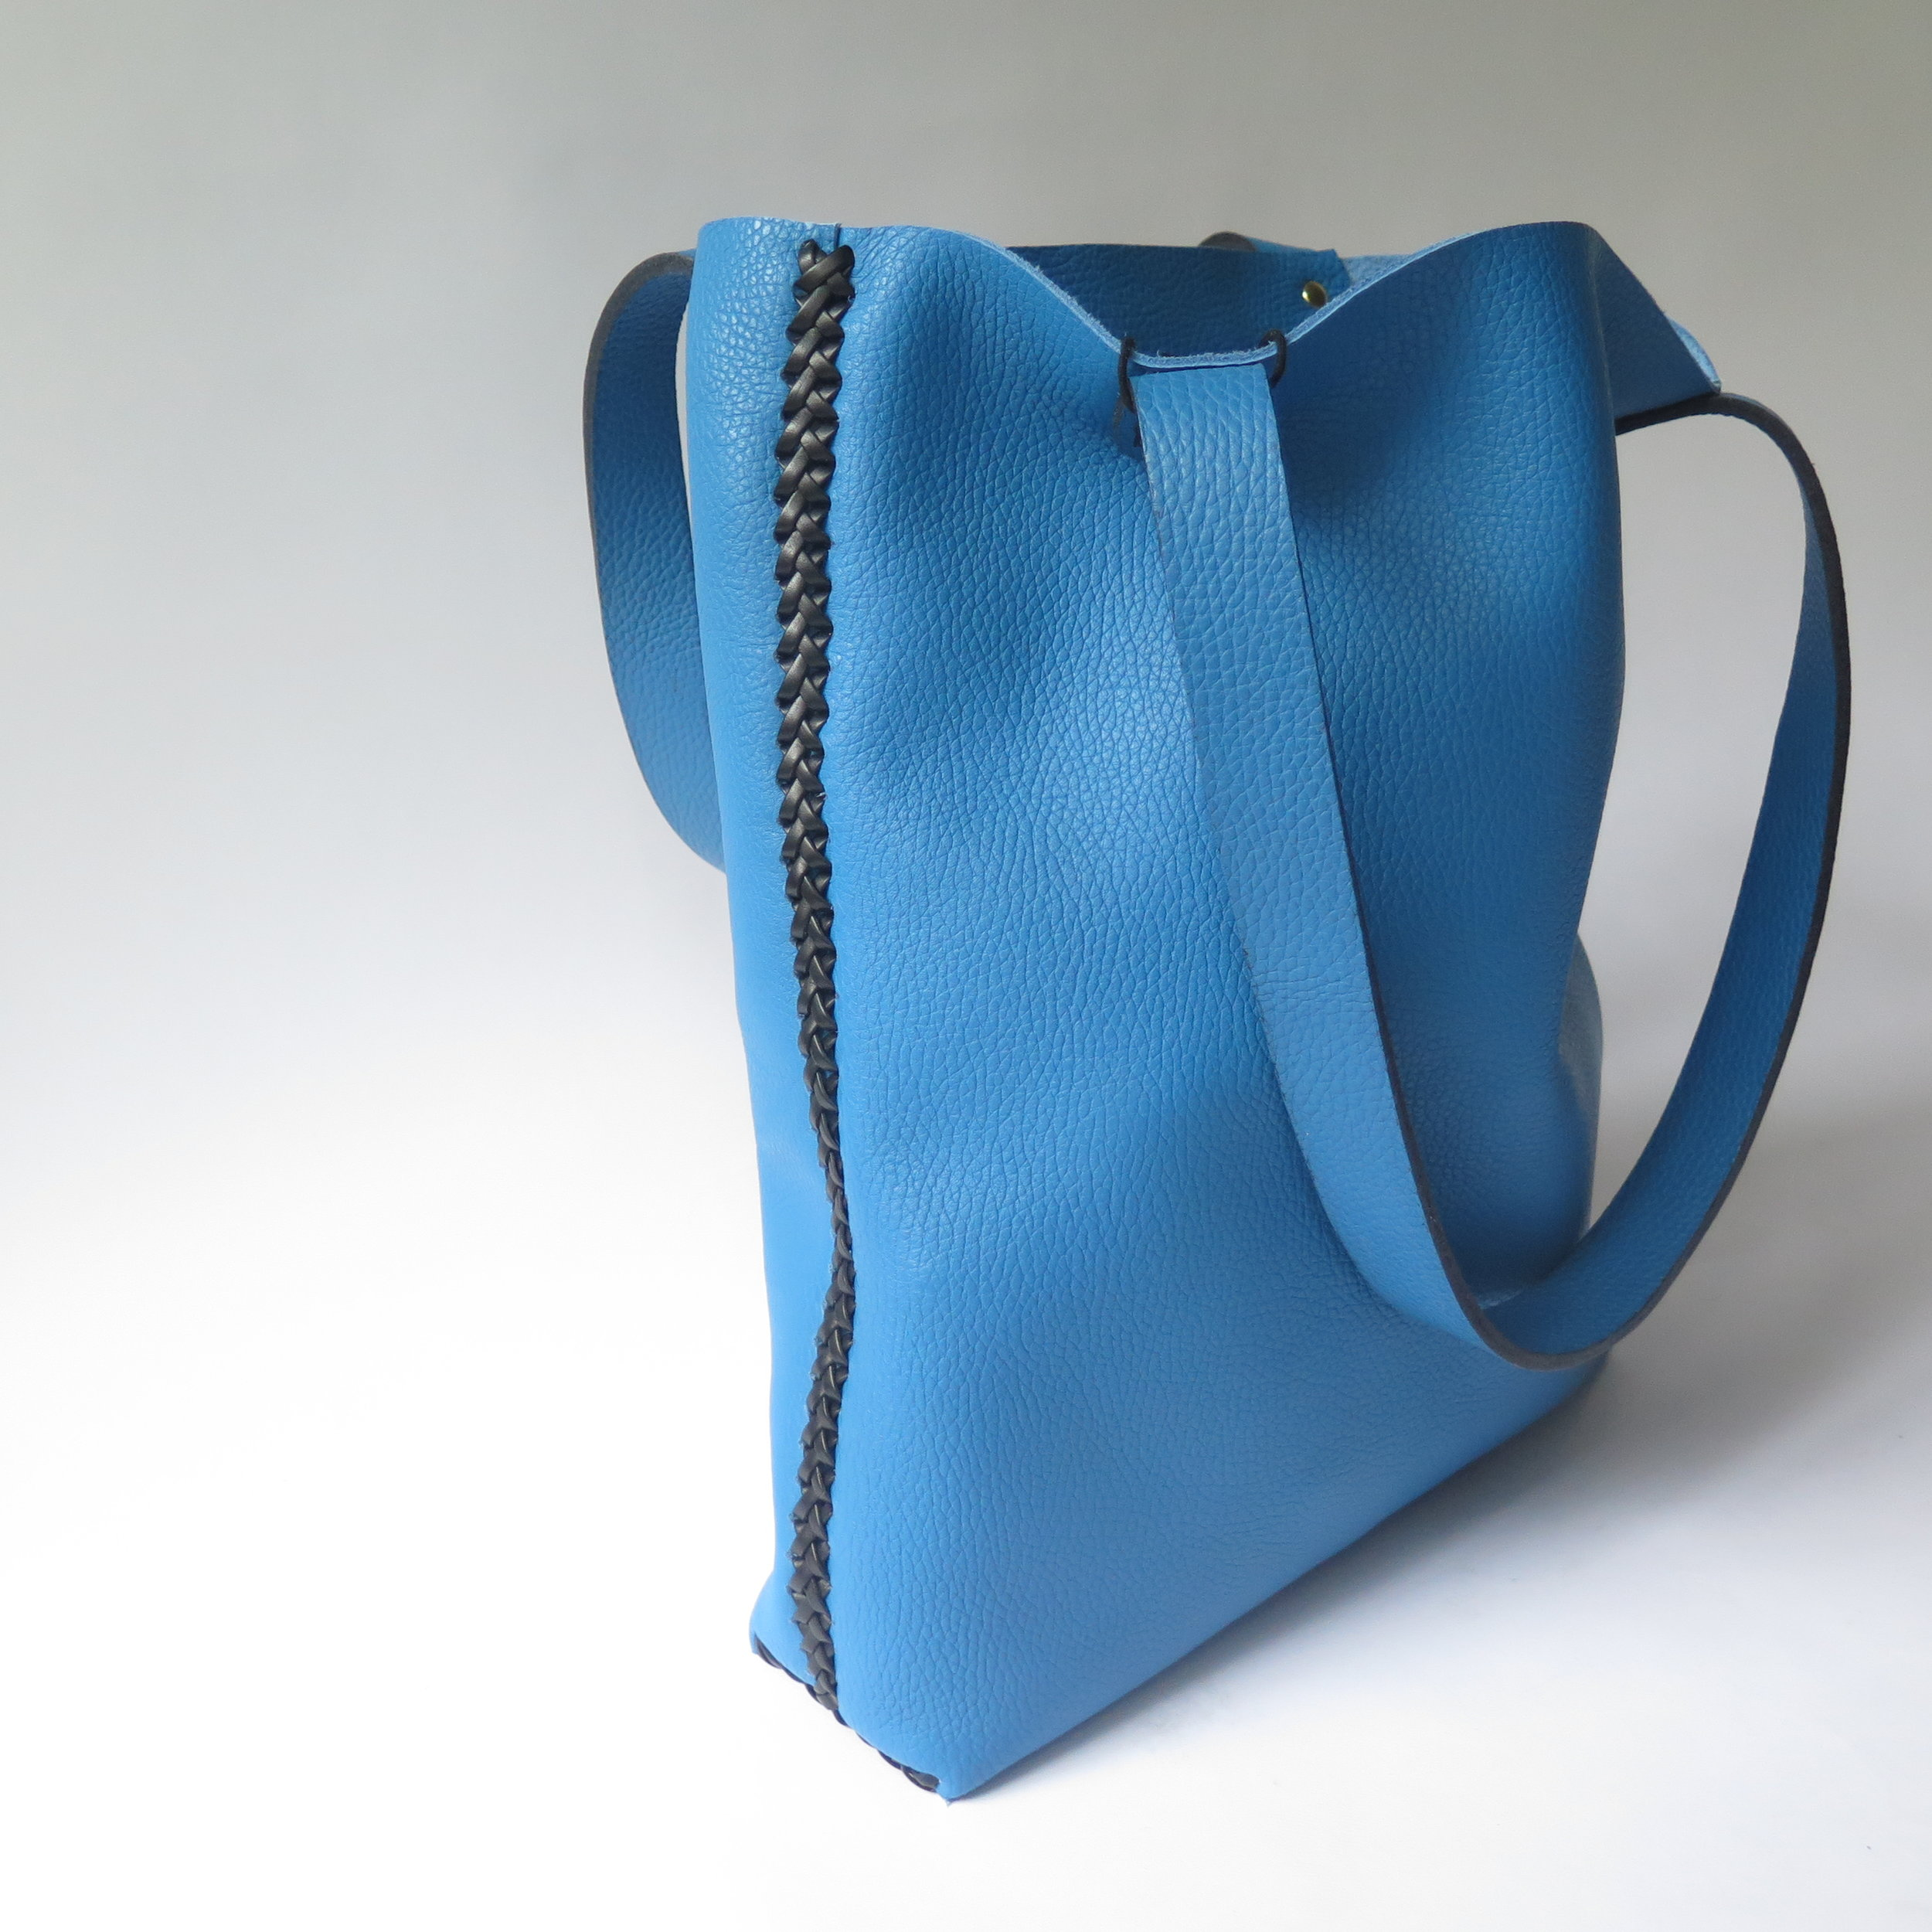 mary-savel-leather-tote-blue-with-black-lacing-3.JPG